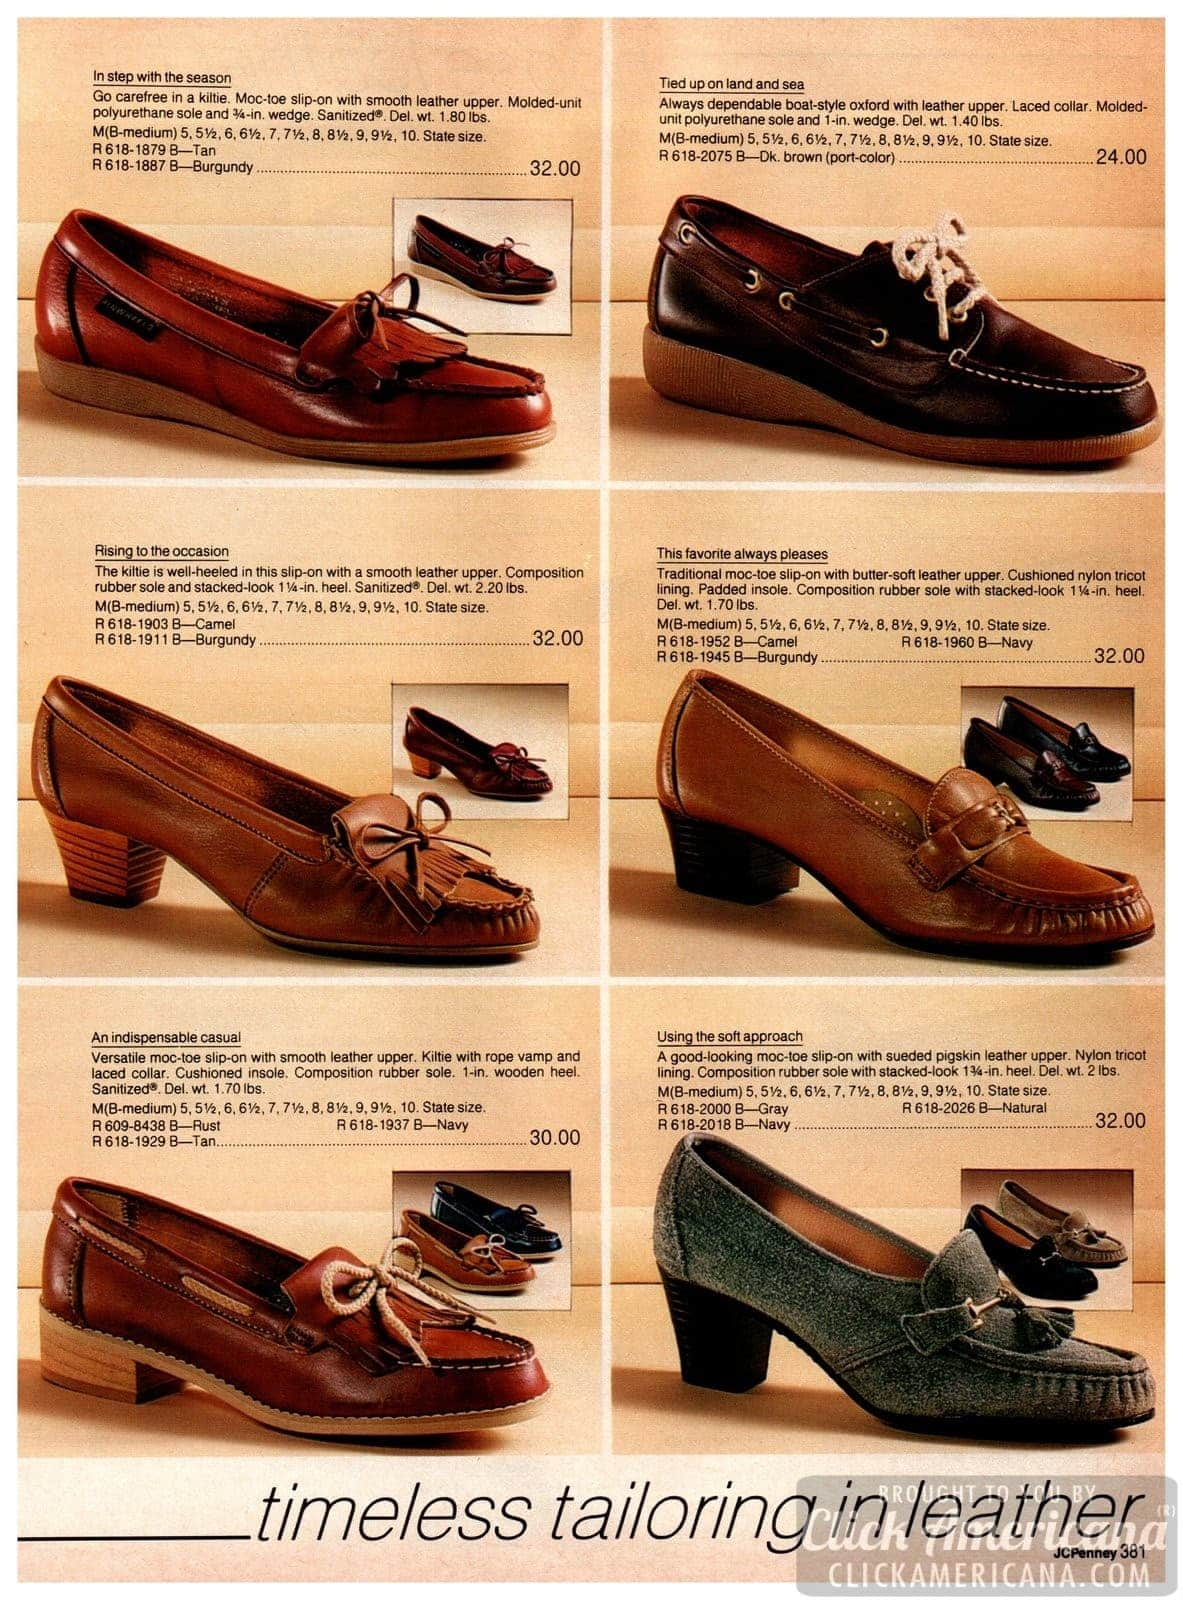 Conservative vintage moccasins and low-heeled slip-on shoes in neutral colors - Retro footwear for ladies